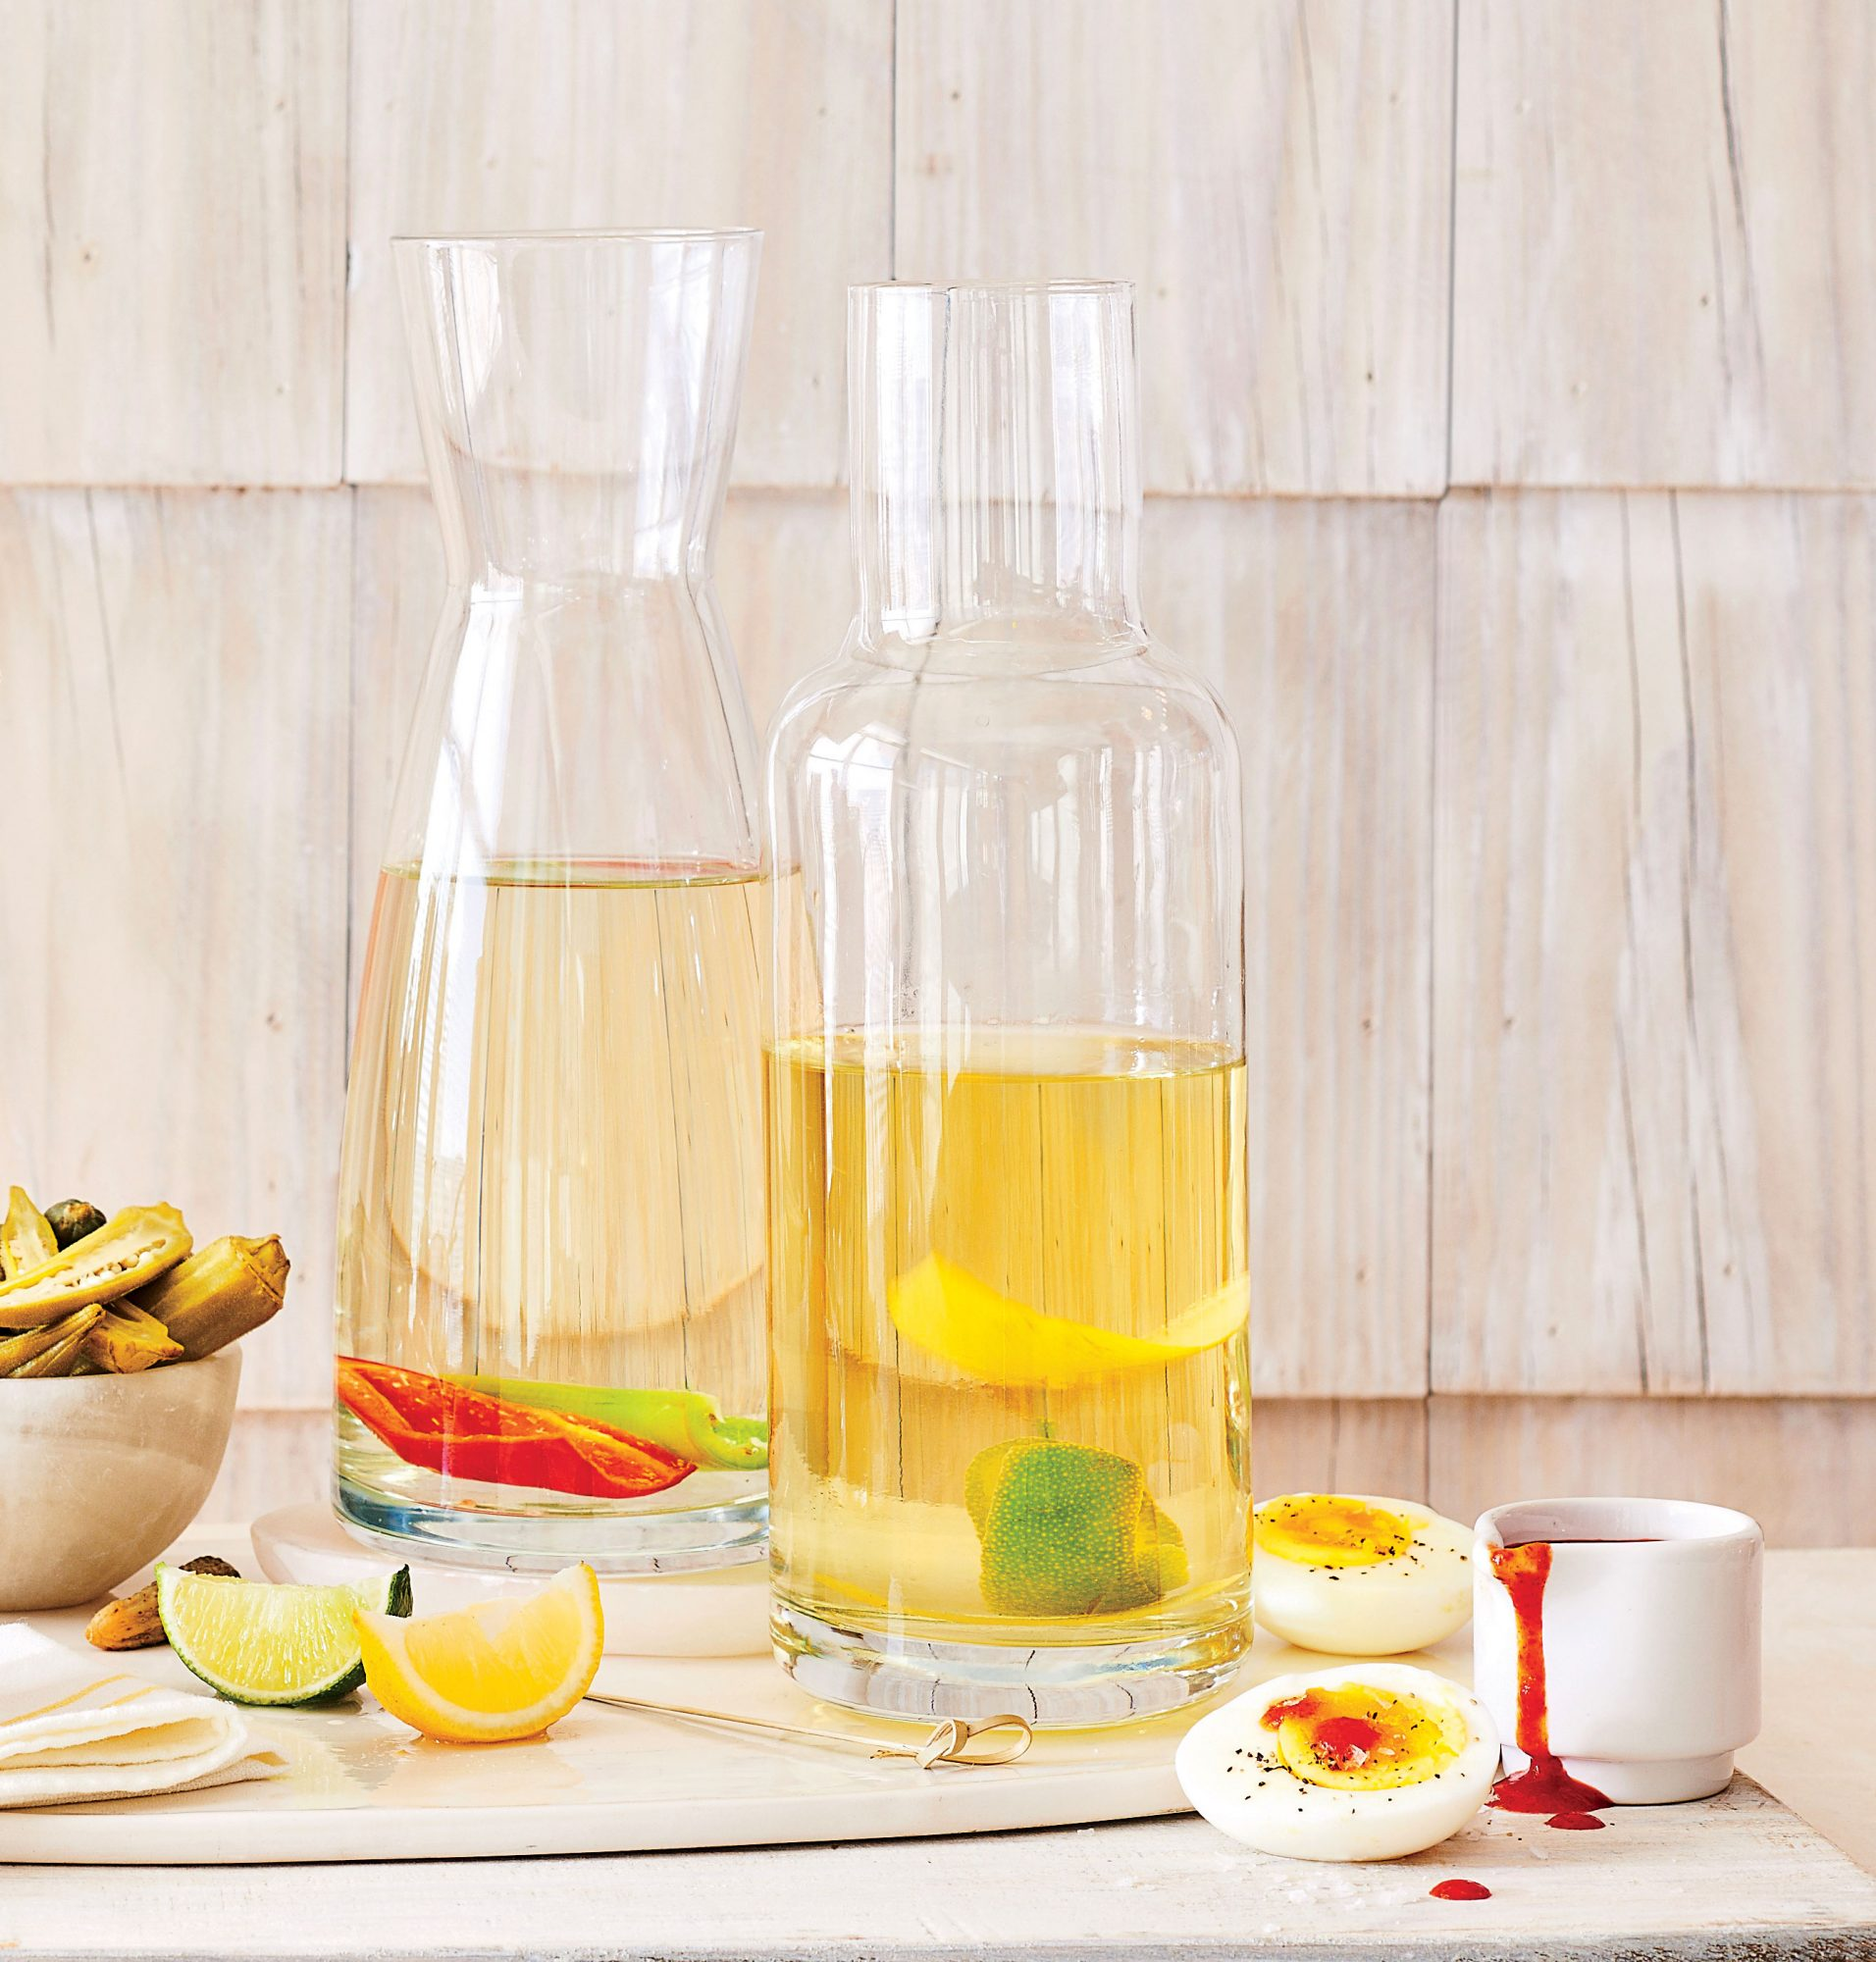 Citrus-Lemongrass Vodka image